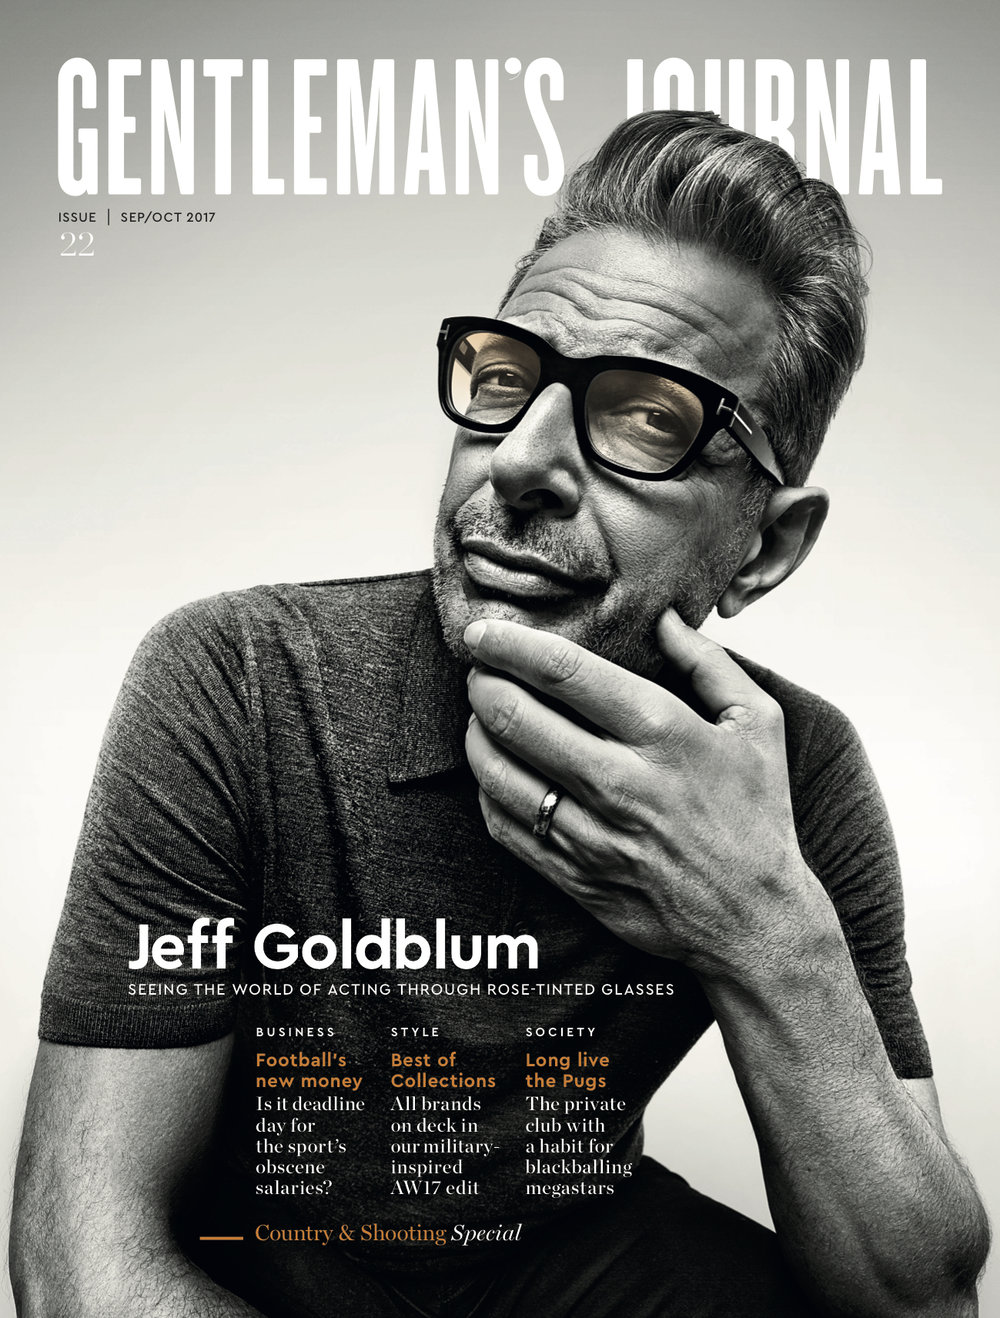 ANR_Signature_Collection_Cover_Jeff_Goldblum.jpg